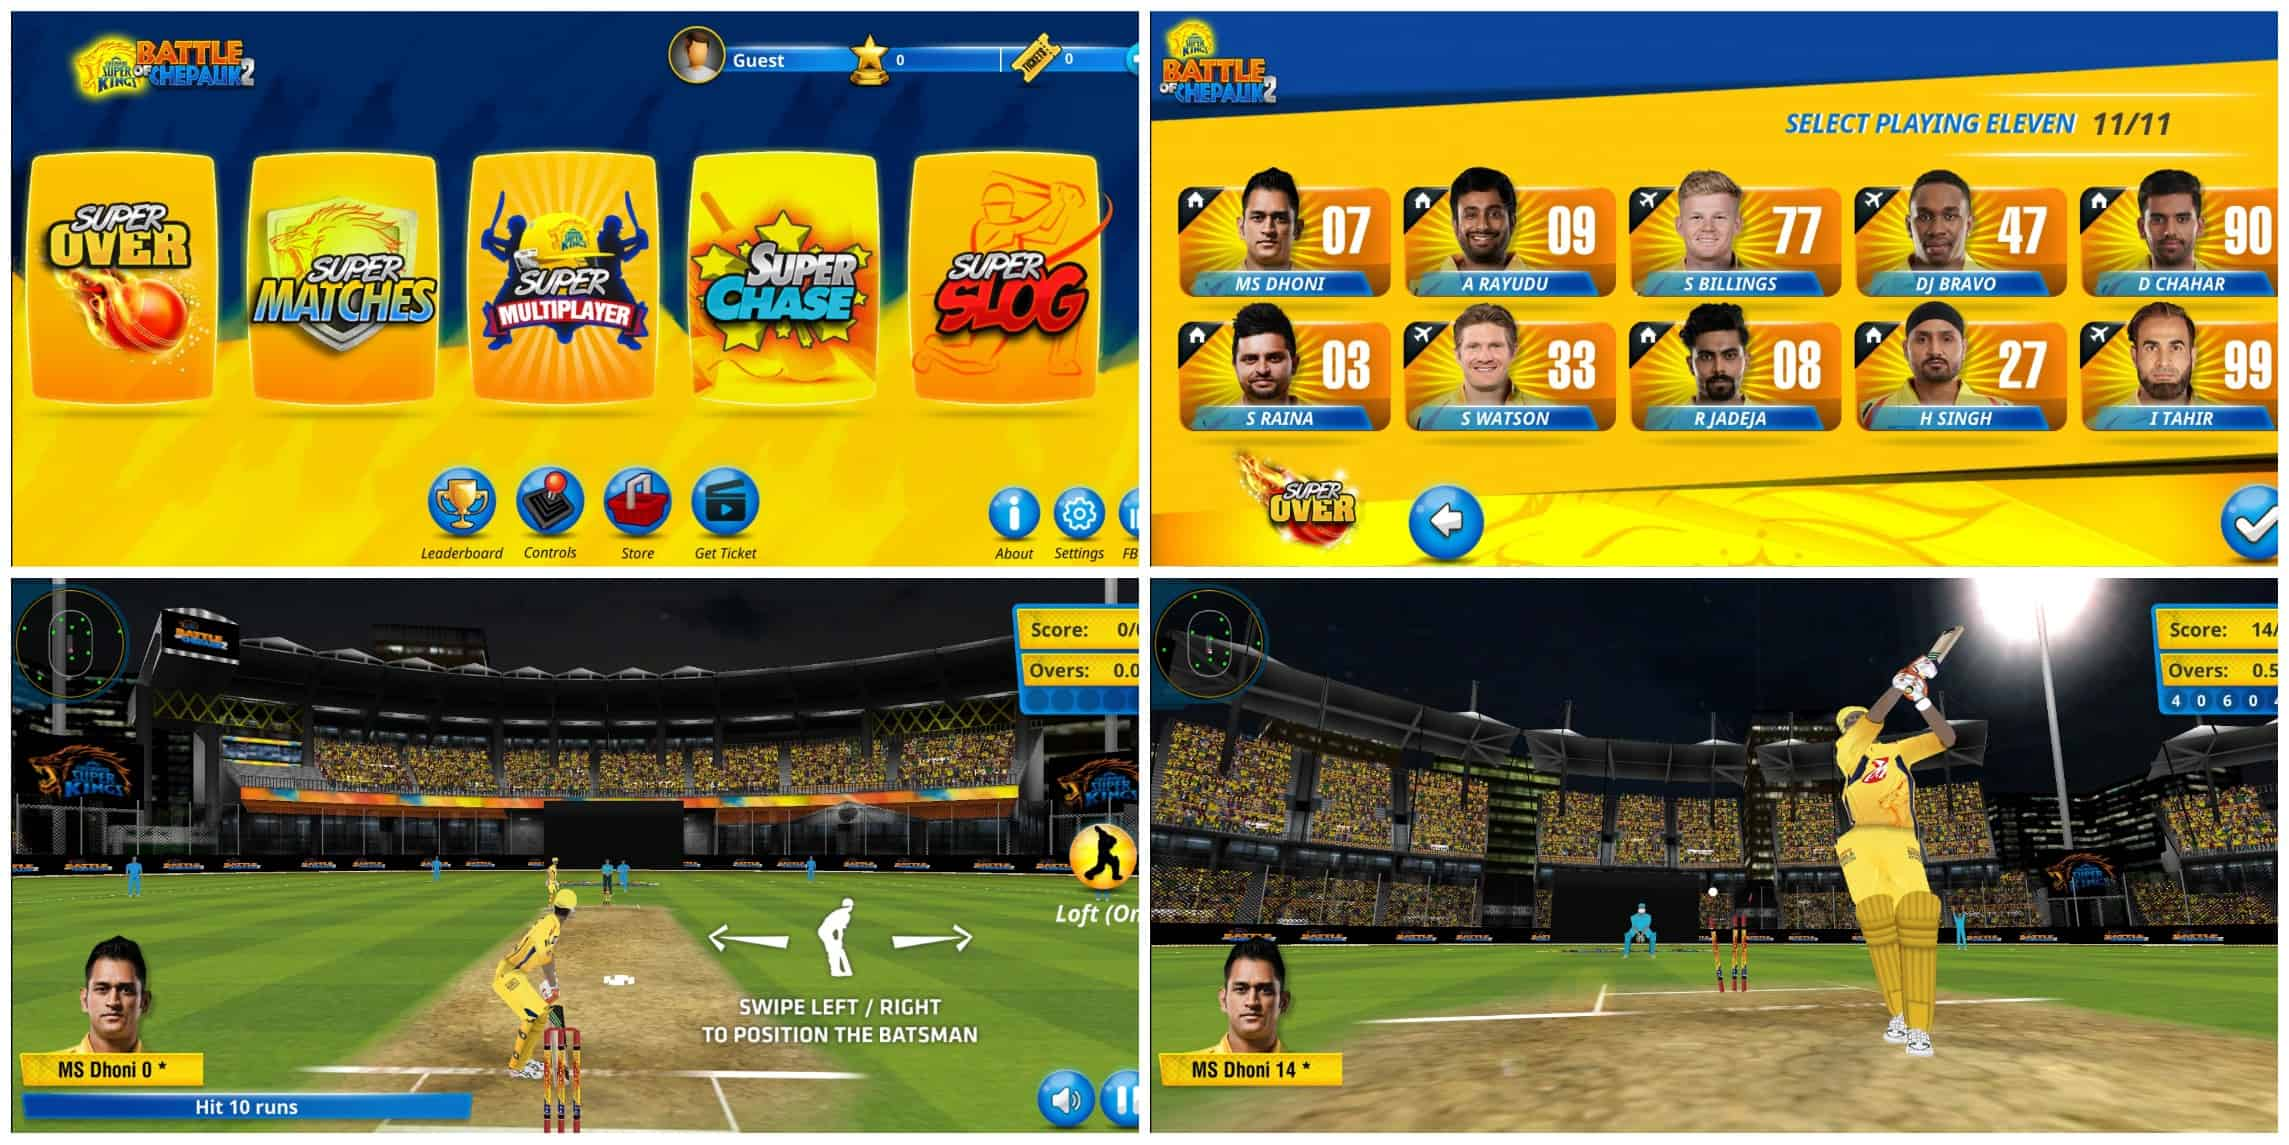 CSK: Battle of Chepauk 2